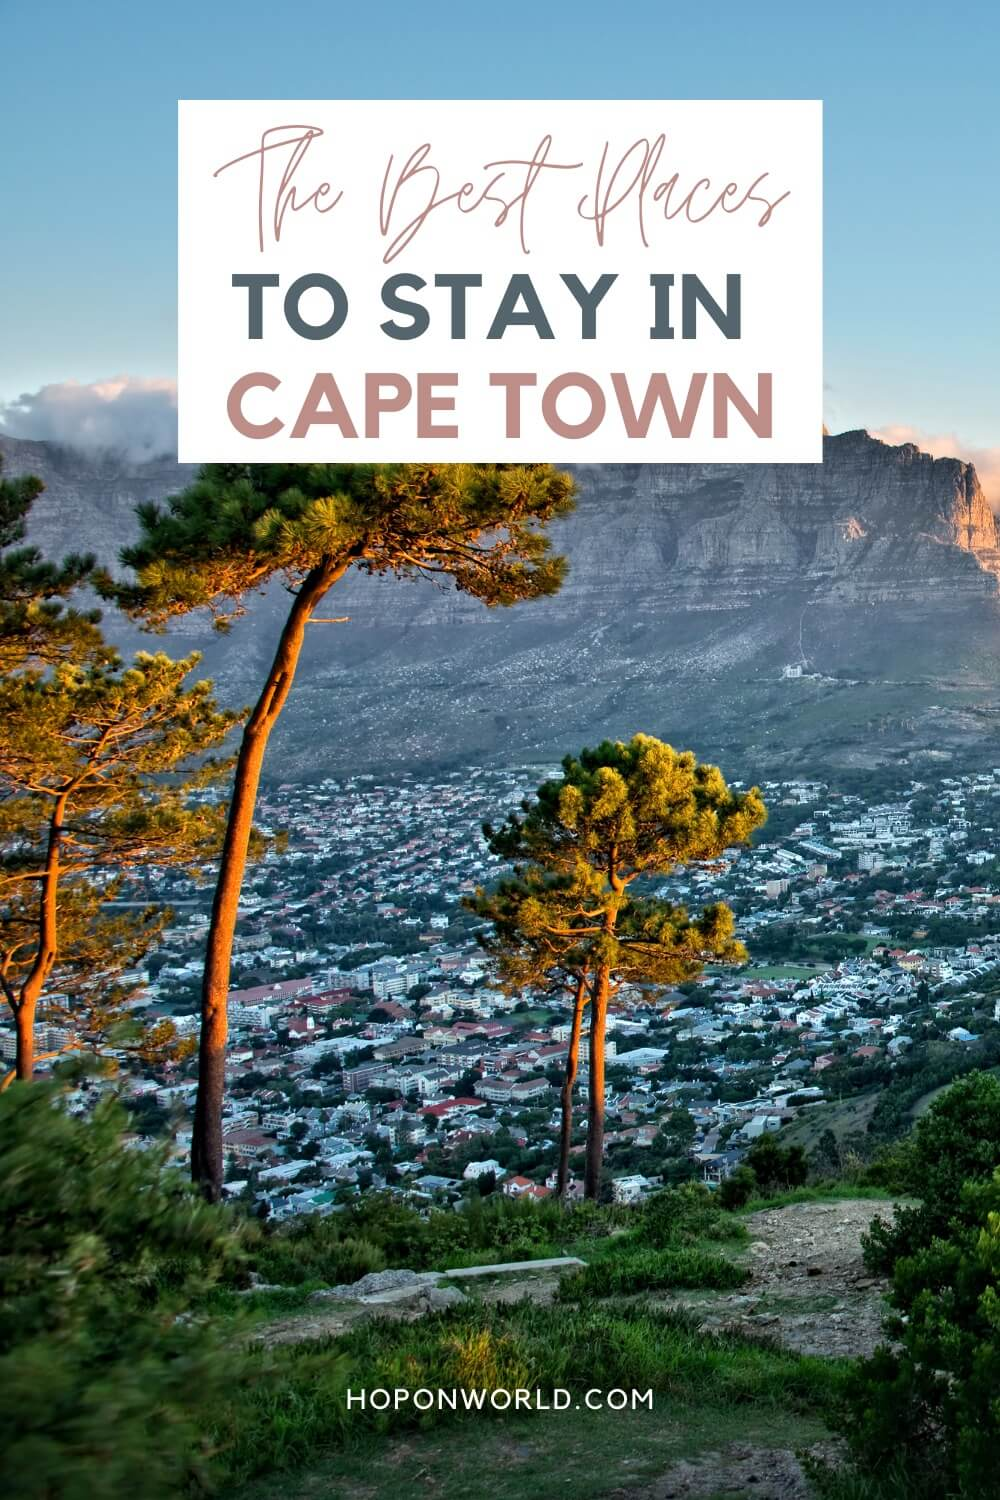 Wondering where to stay in Cape Town? These 15 Cape Town hotels and hostels have it all - from epic views to great location and service to beautiful interiors! Read along to find the best places to stay in Cape Town here! #wheretostayincapetown #accommodationincapetown #placestostaycapetown #capetownluxuryhotels #cheaphotelscapetown #capetownhotels